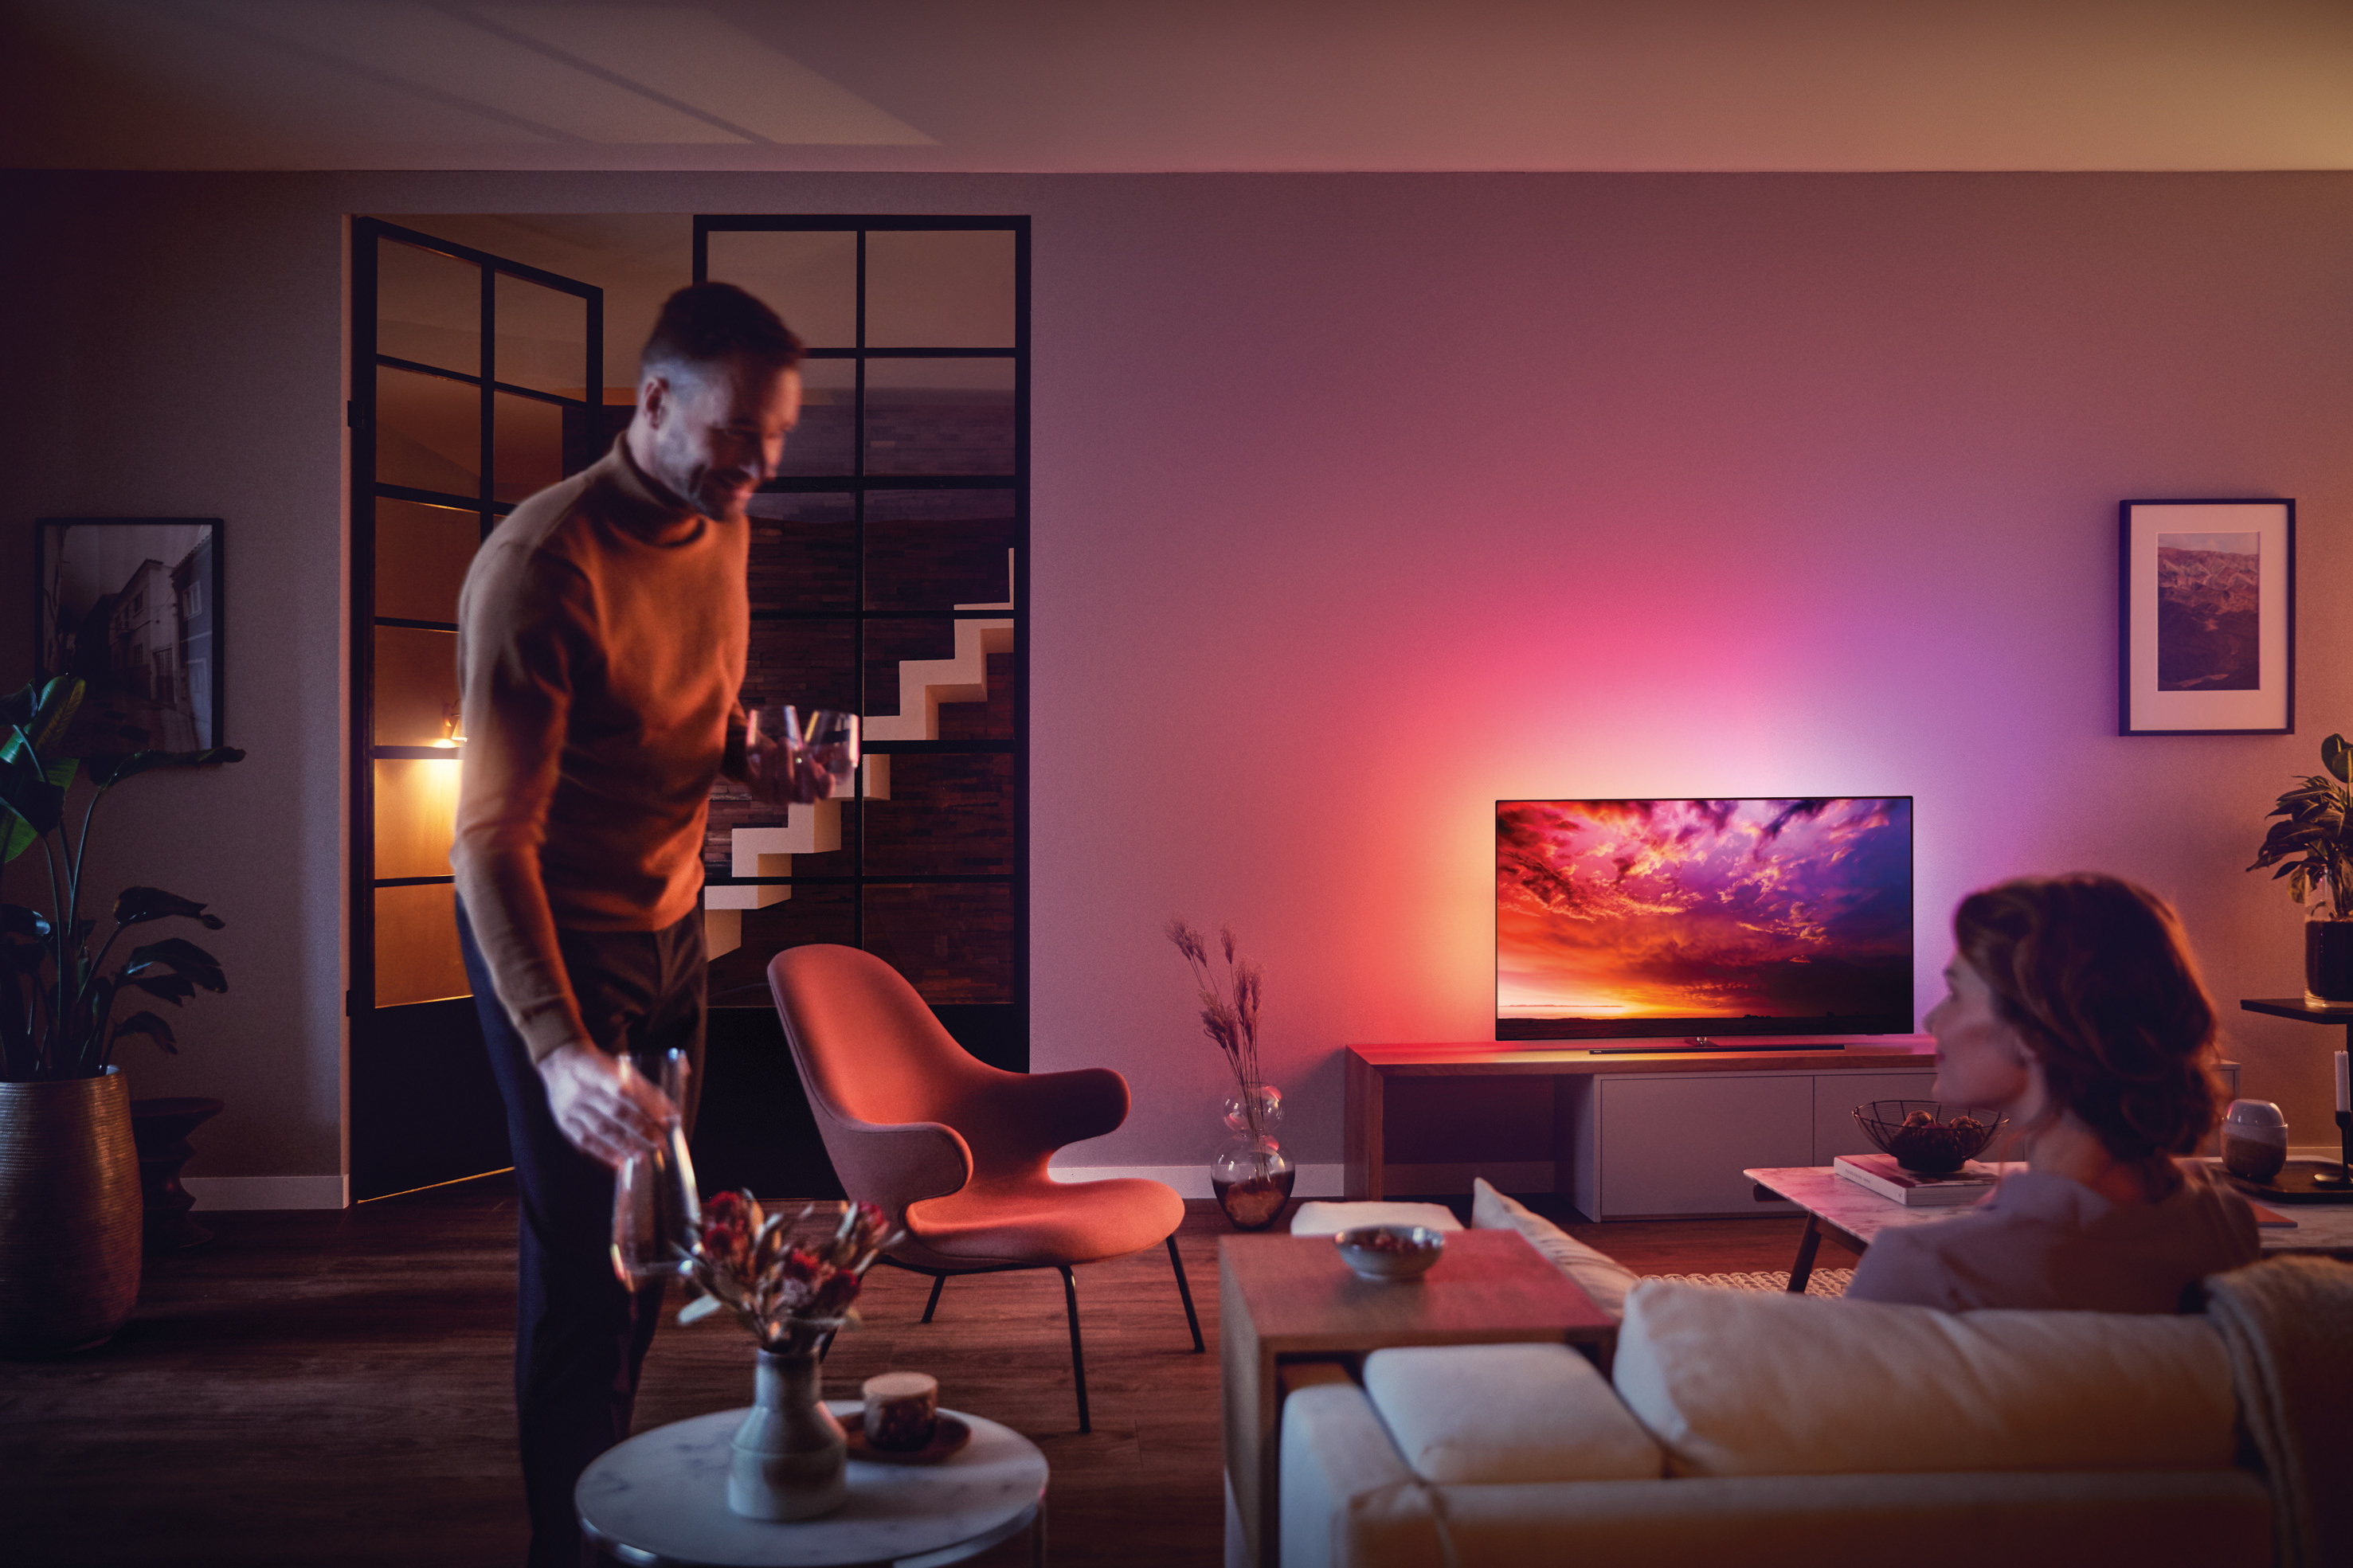 (P) The One by Philips Tv